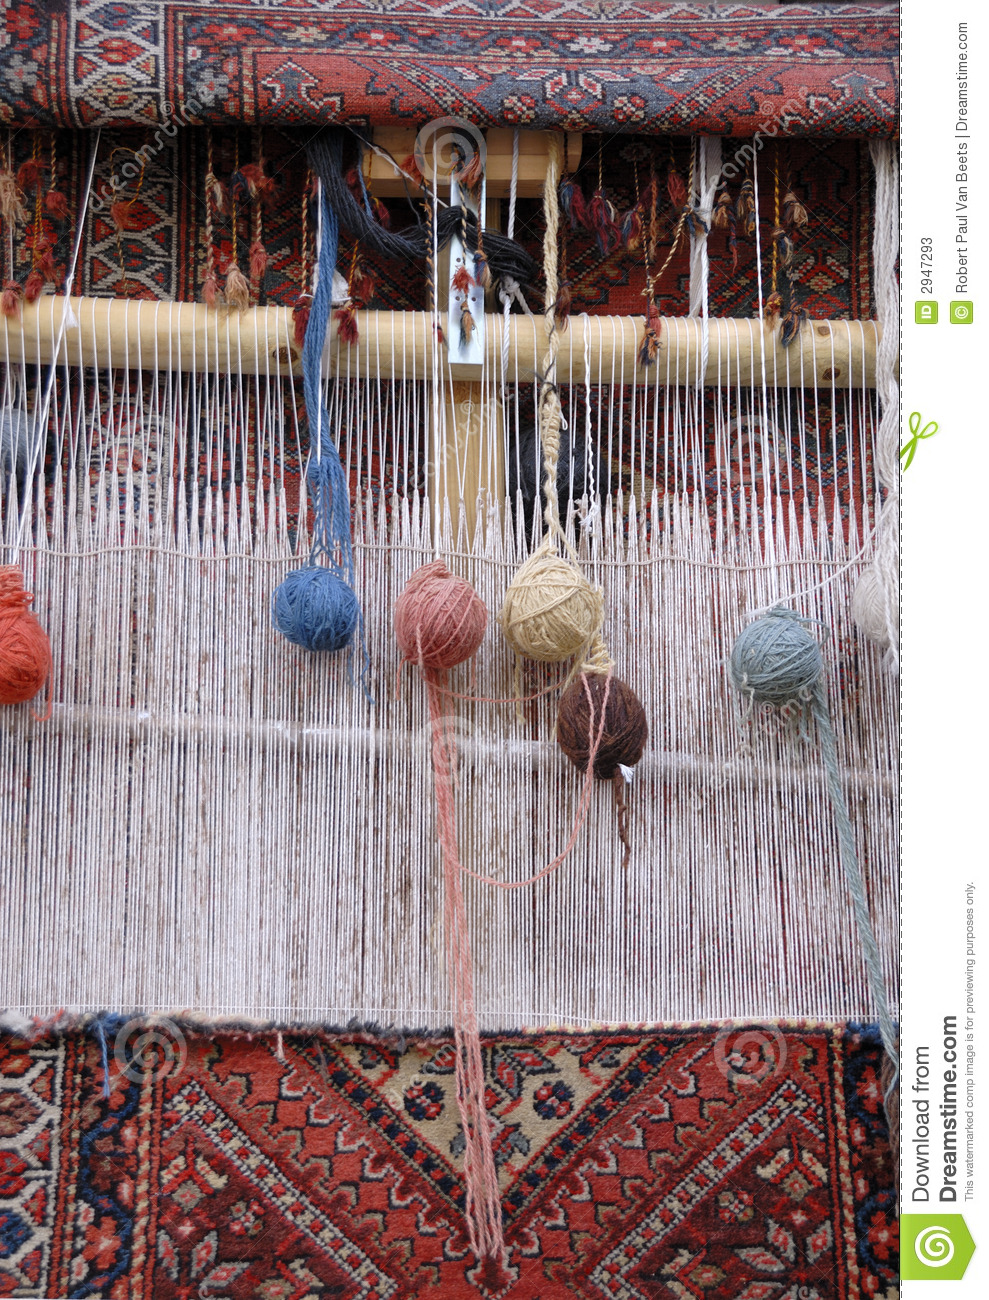 Carpet Weaving Loom Stock Image Image Of Thread Carpet